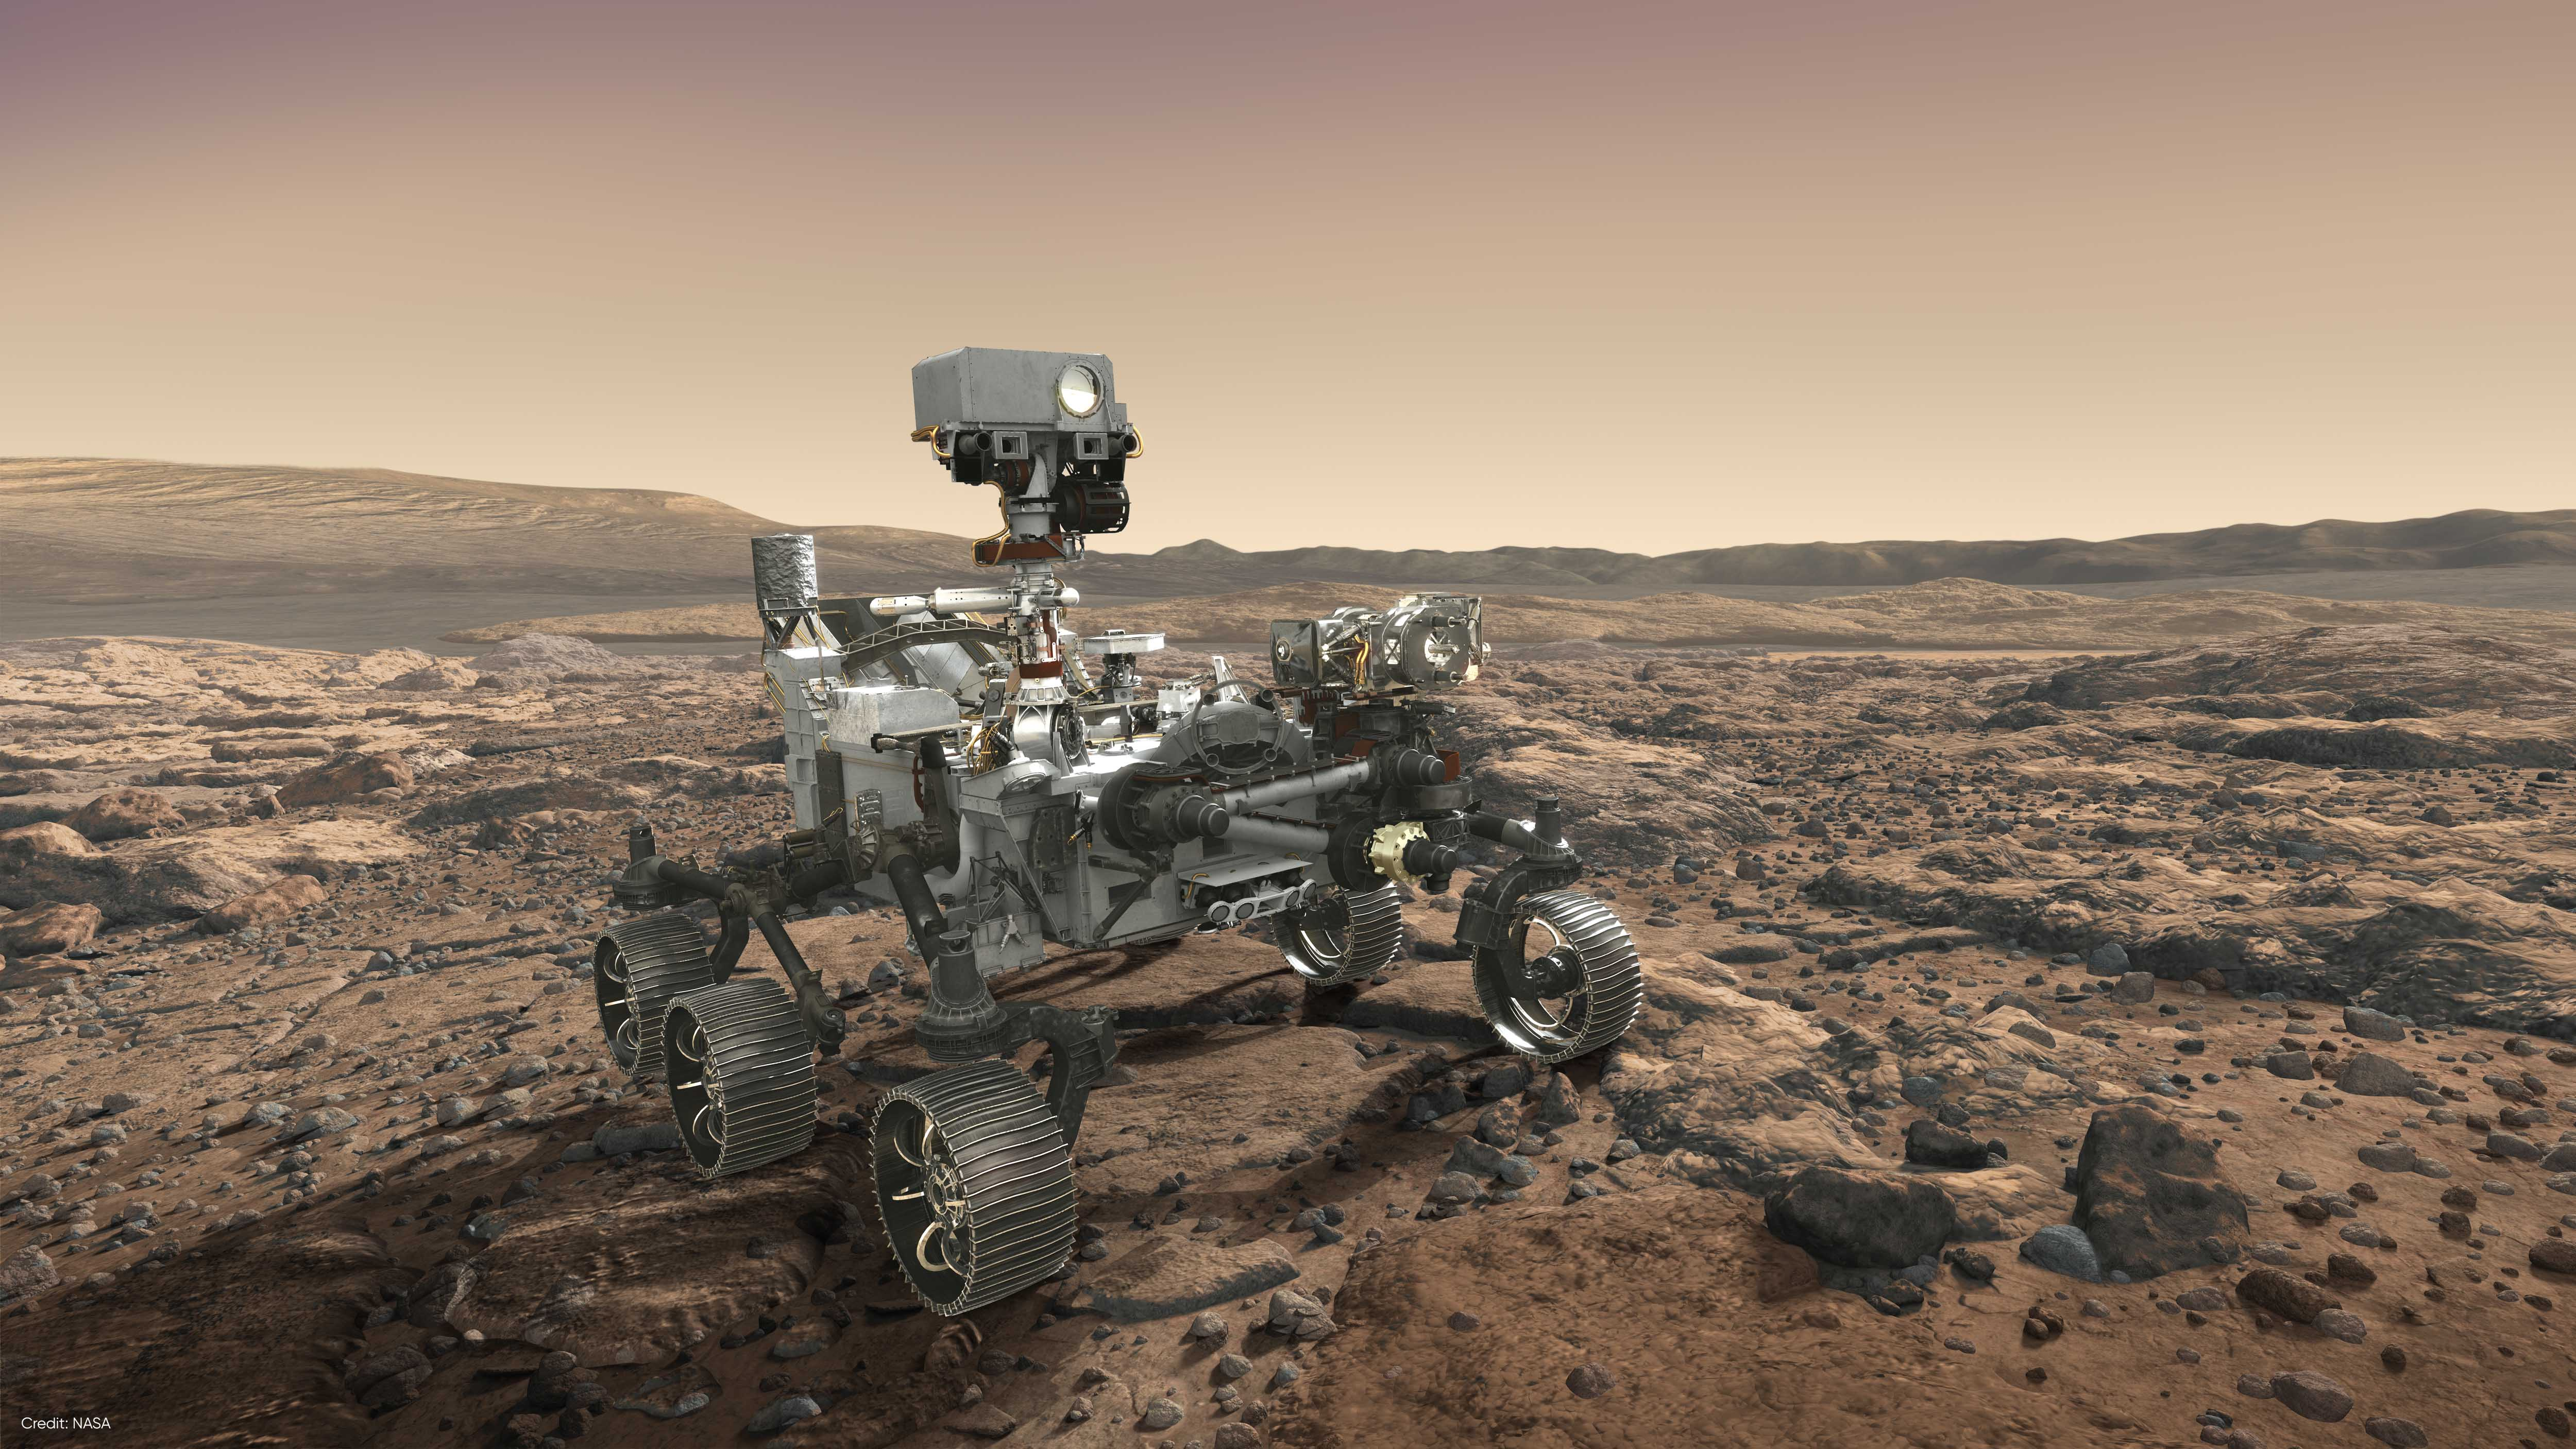 Mars 2020 Perserverance Rover